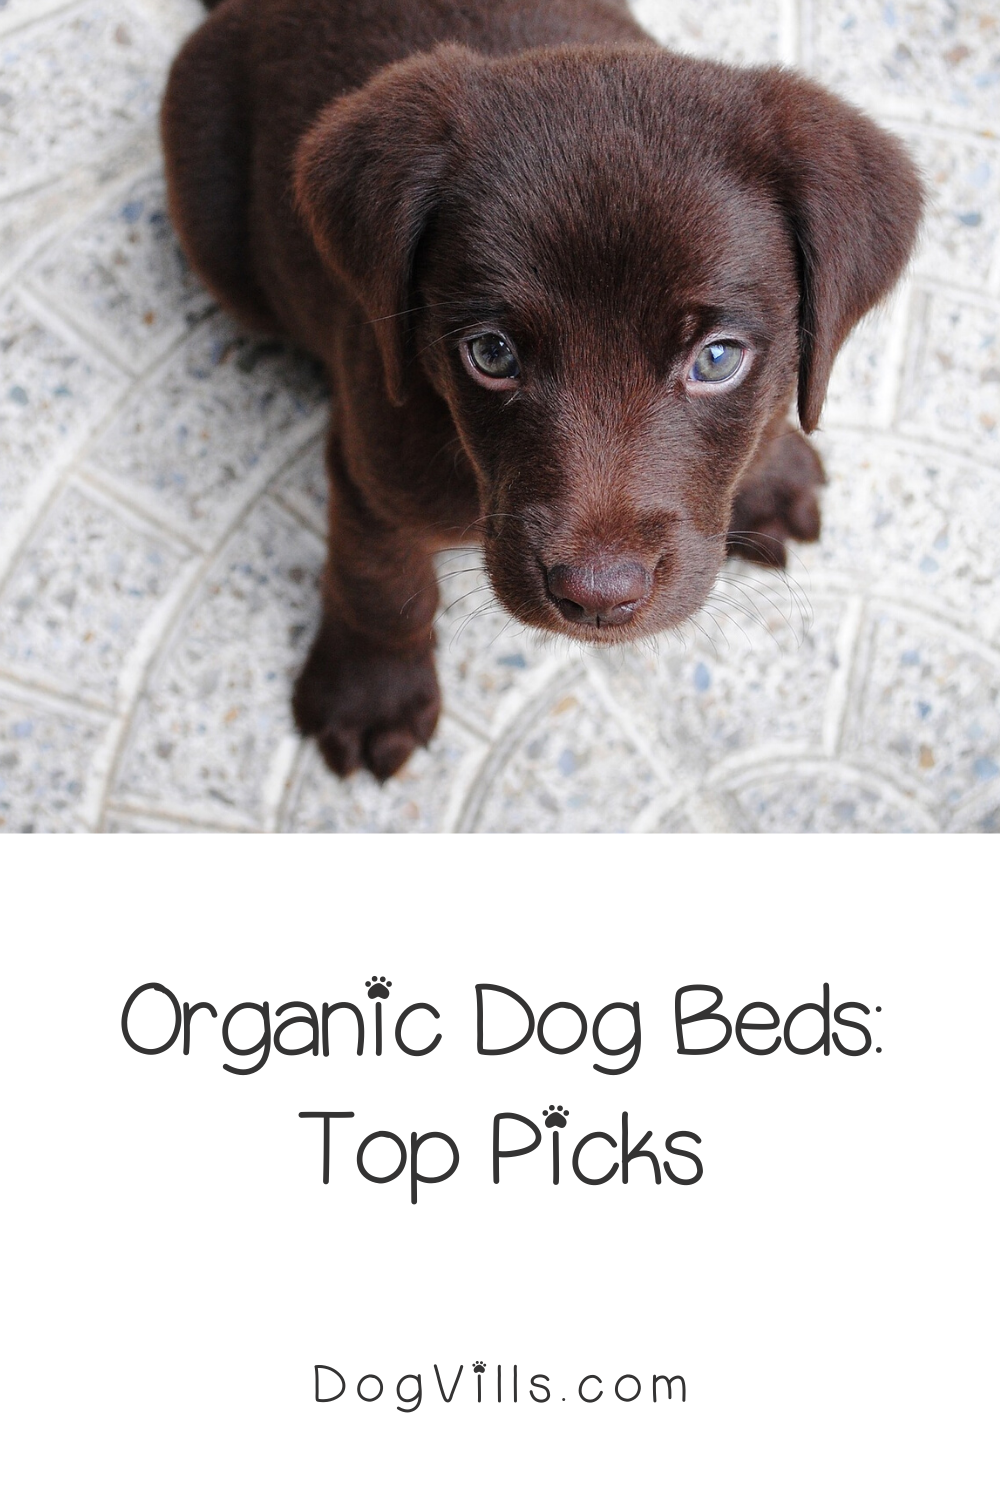 If you're having a hard time finding the best organic dog